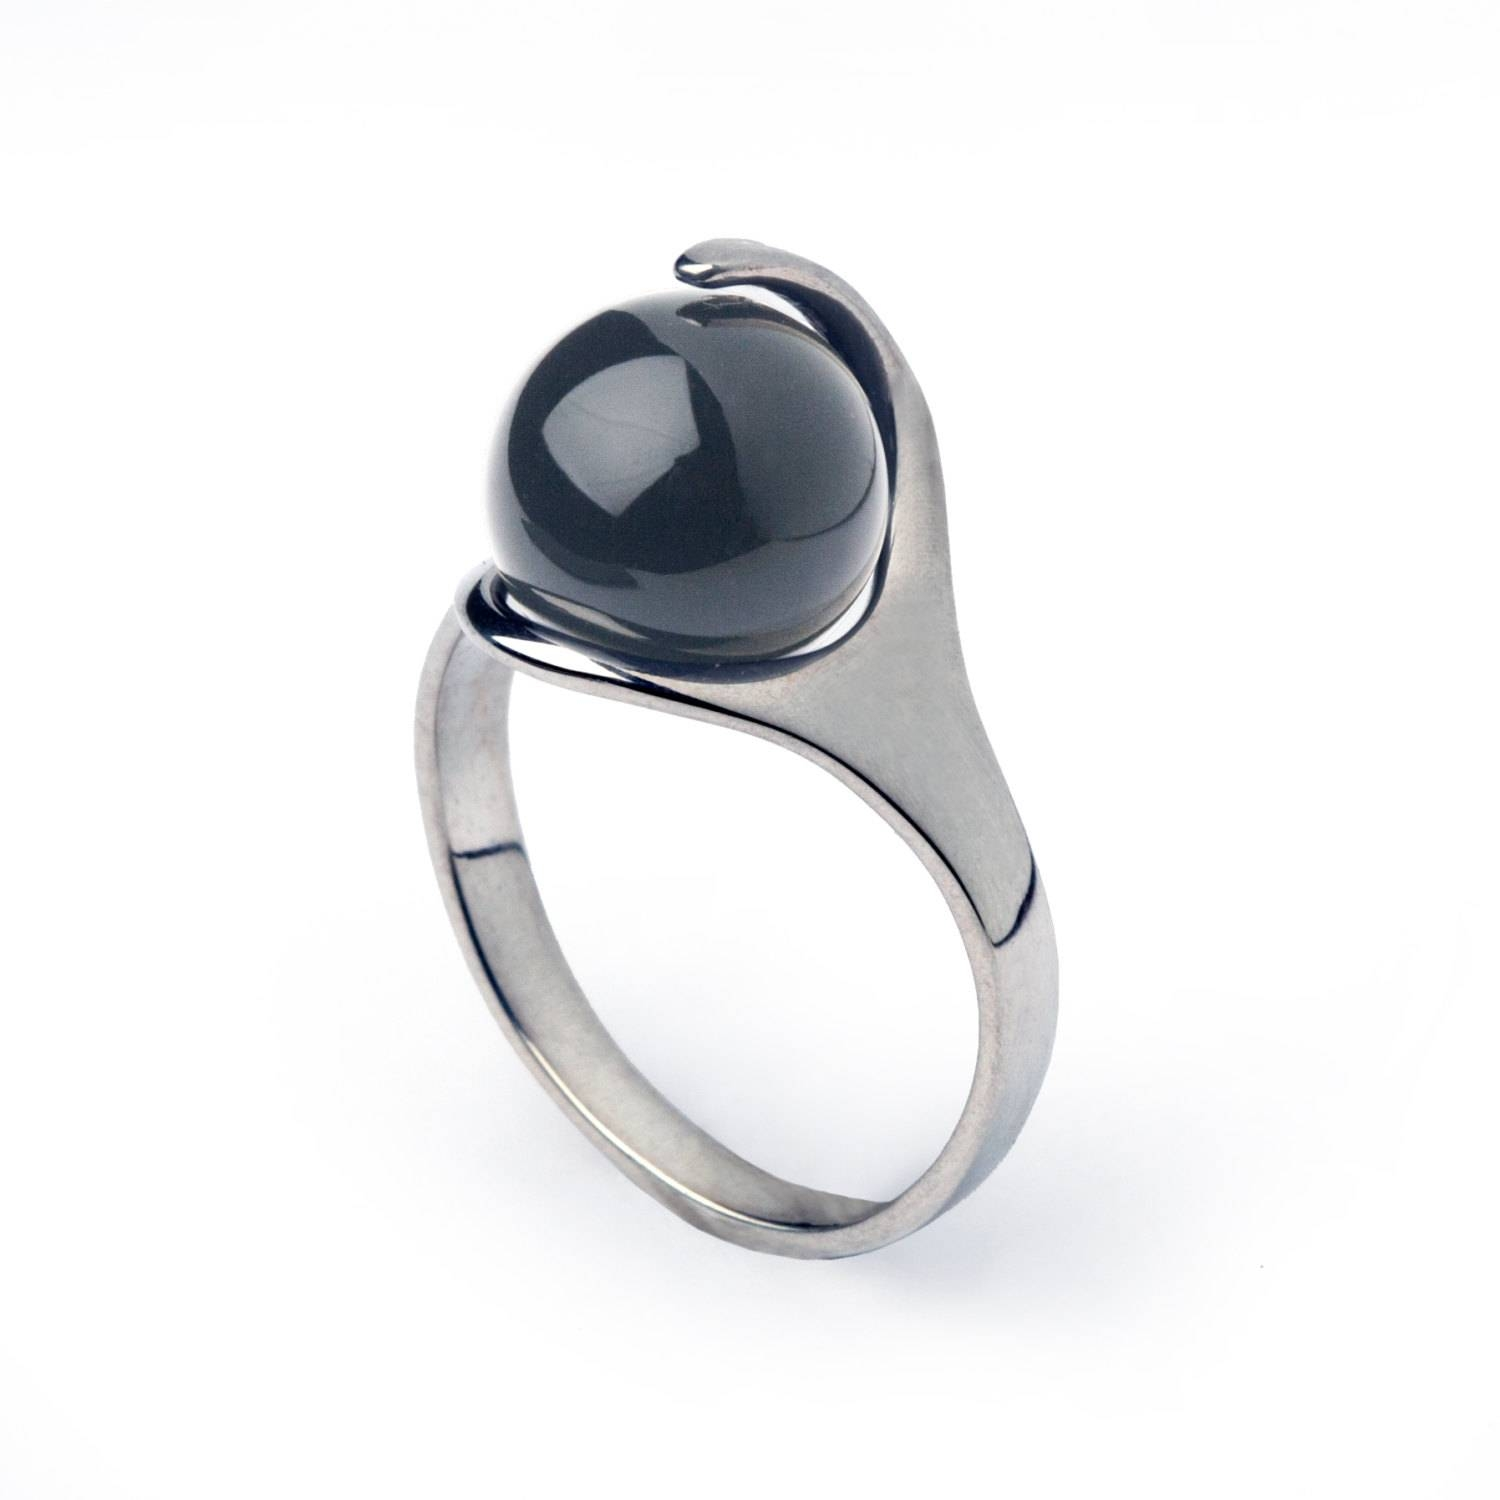 Ra Hematite Ring Egyptian Ring Sterling Silver Hematite Pertaining To Hematite Wedding Bands (View 11 of 15)